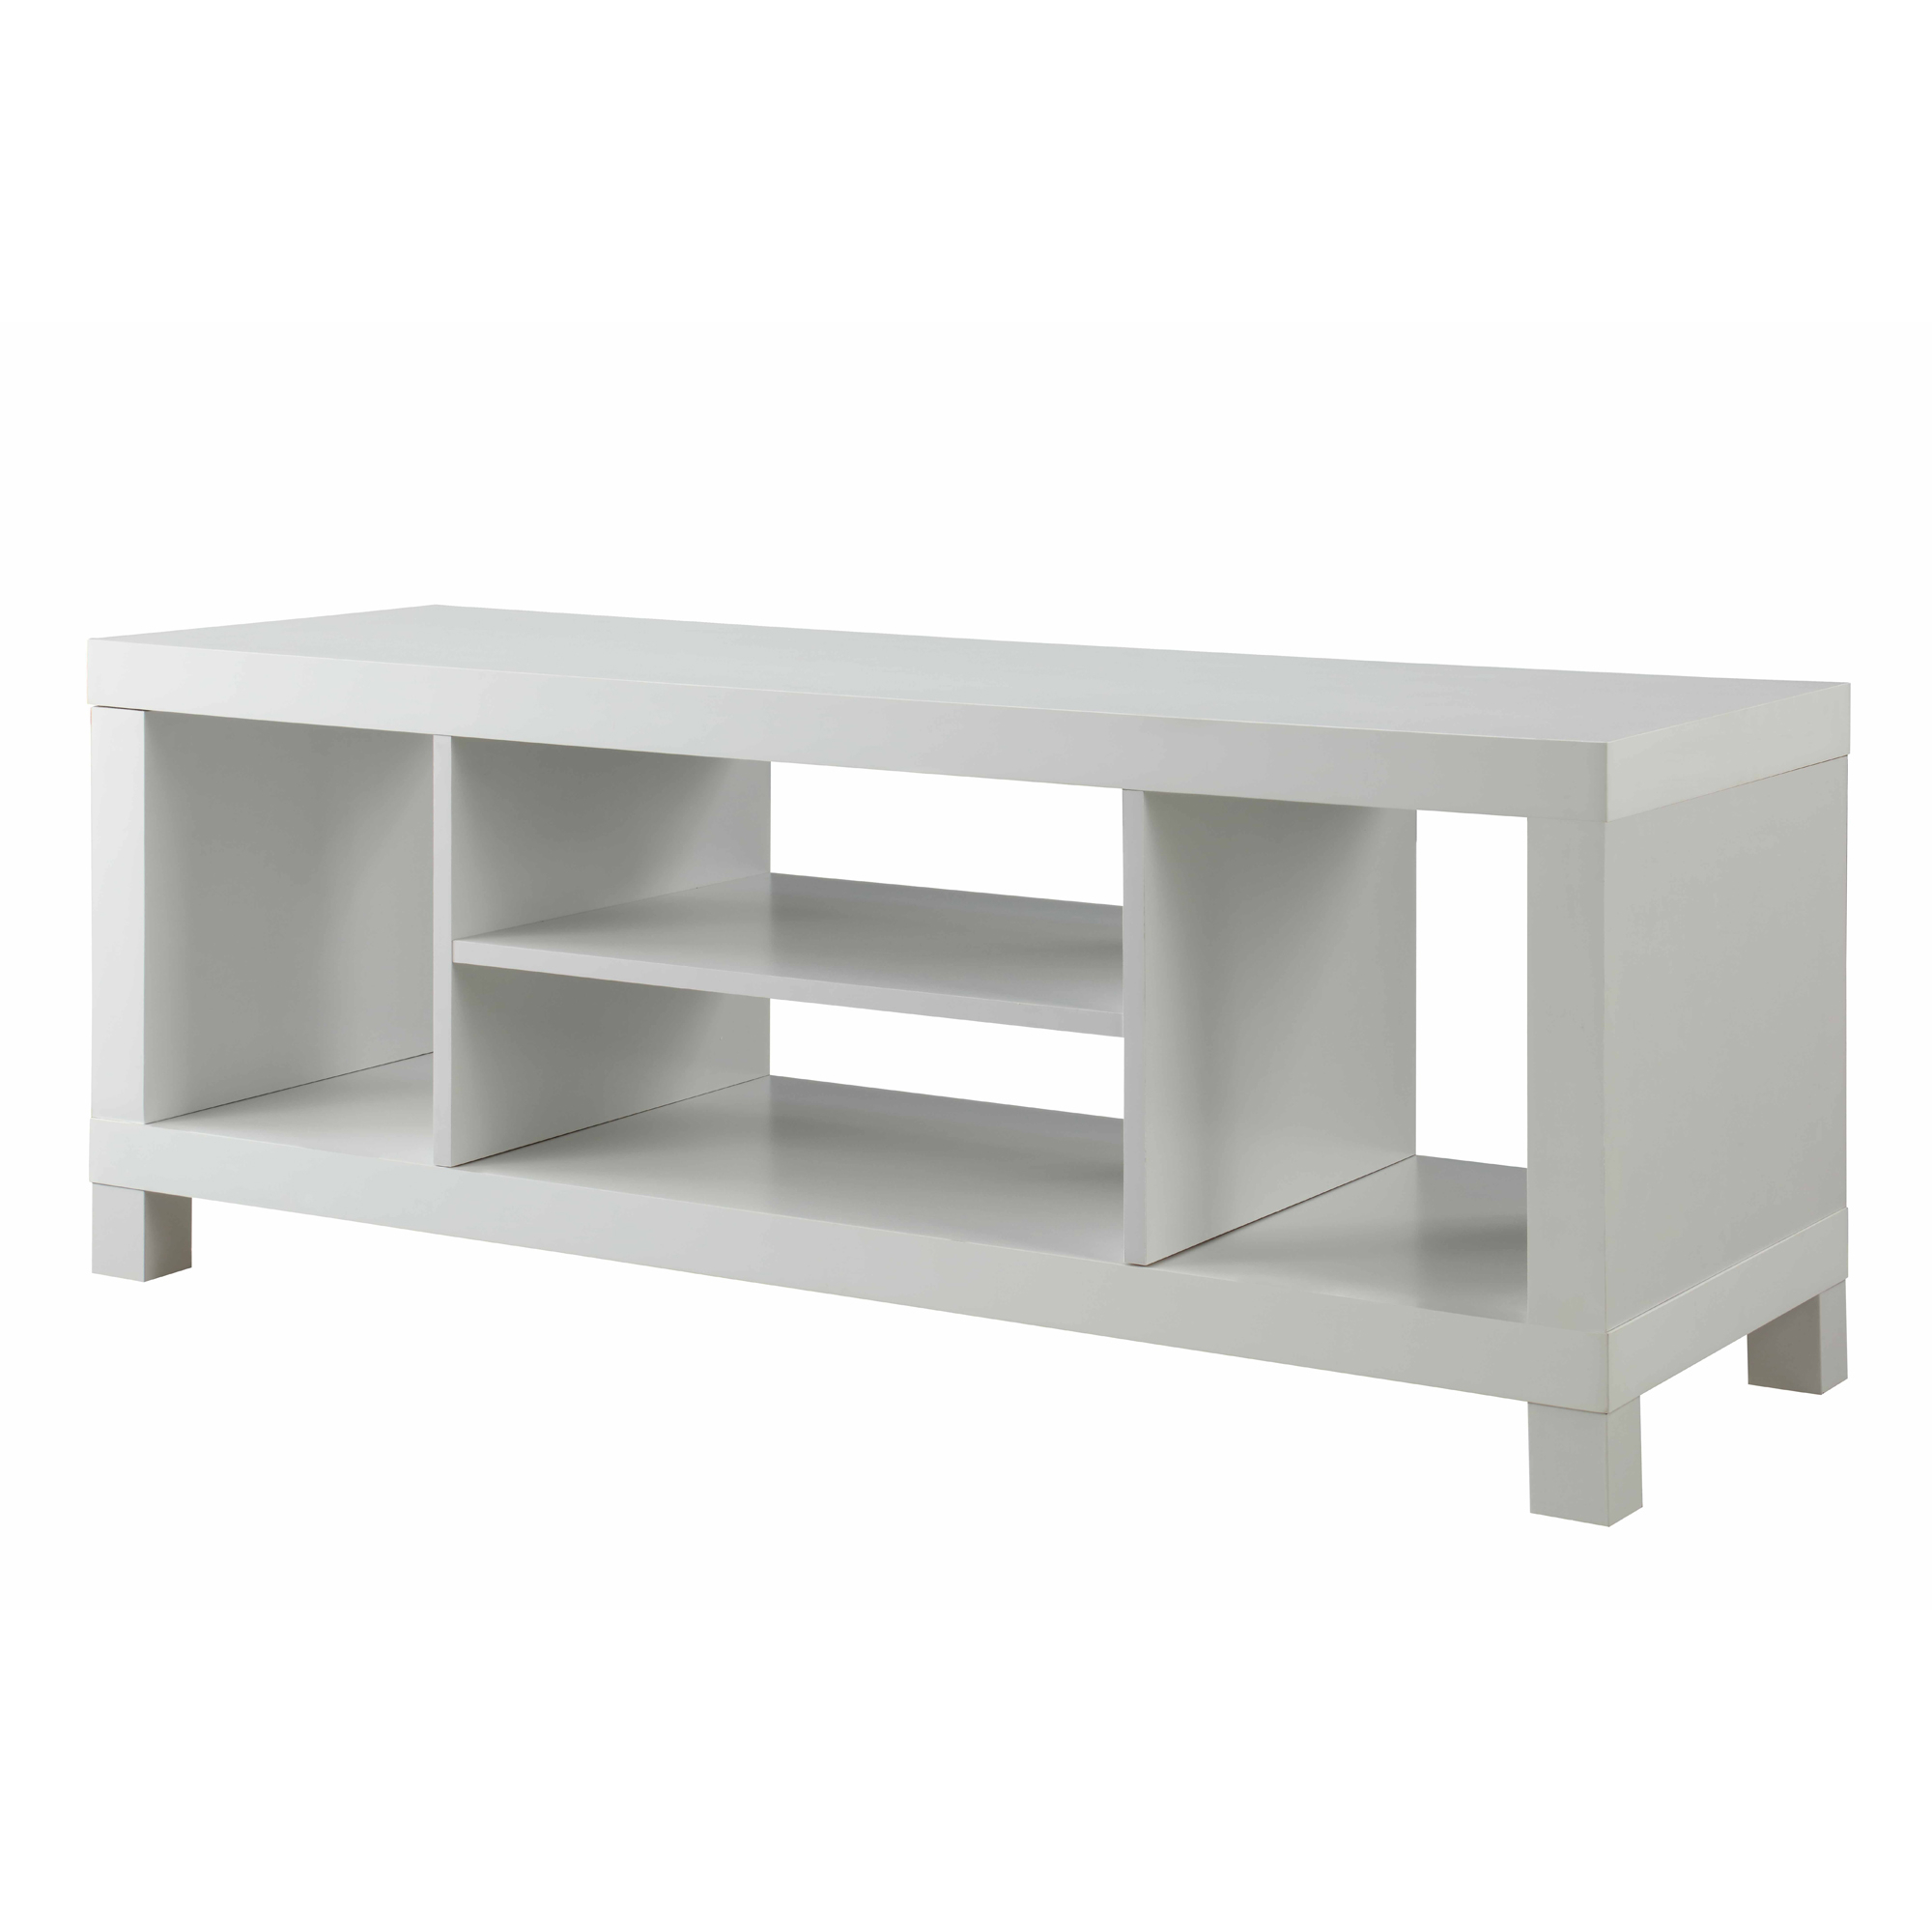 Modern Low Profile Tv Stands Within 2017 Smart Tv Stand White Modern 48 Inch Entertainment Low Profile Center (View 9 of 20)